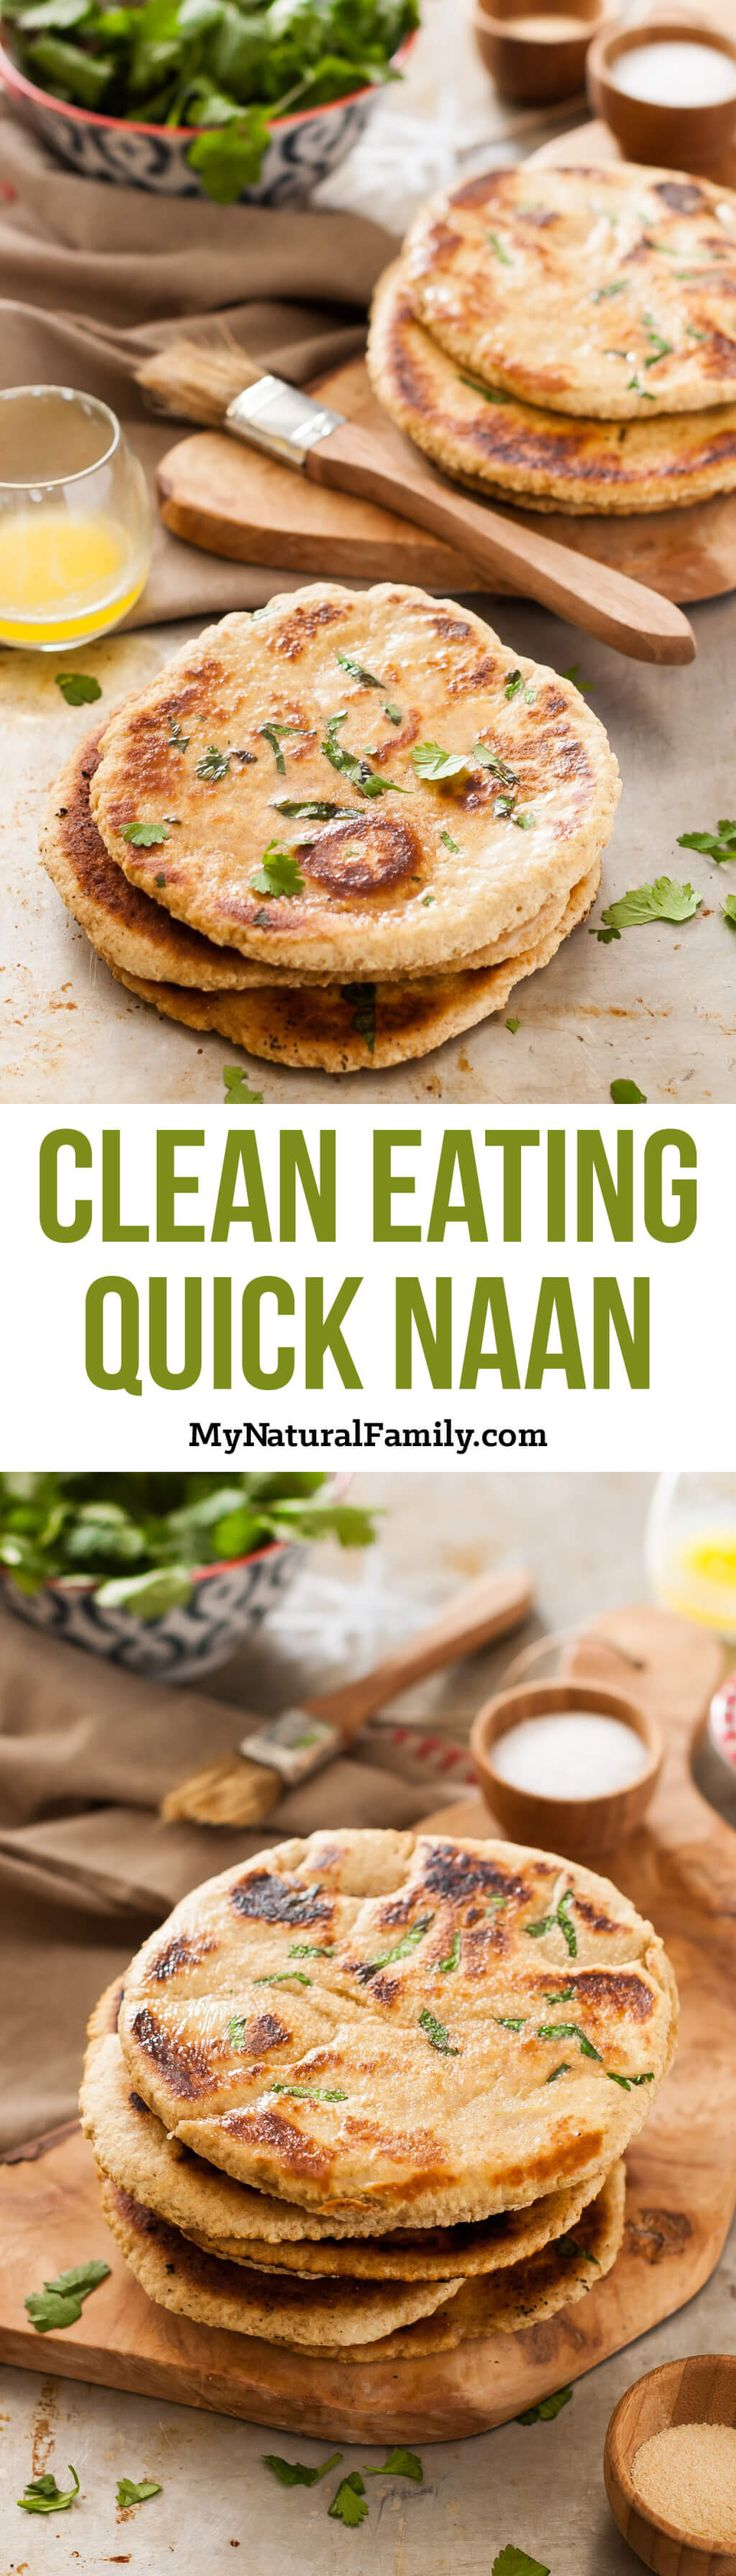 Yeast-Free Quick Naan Recipe {Clean Eating}